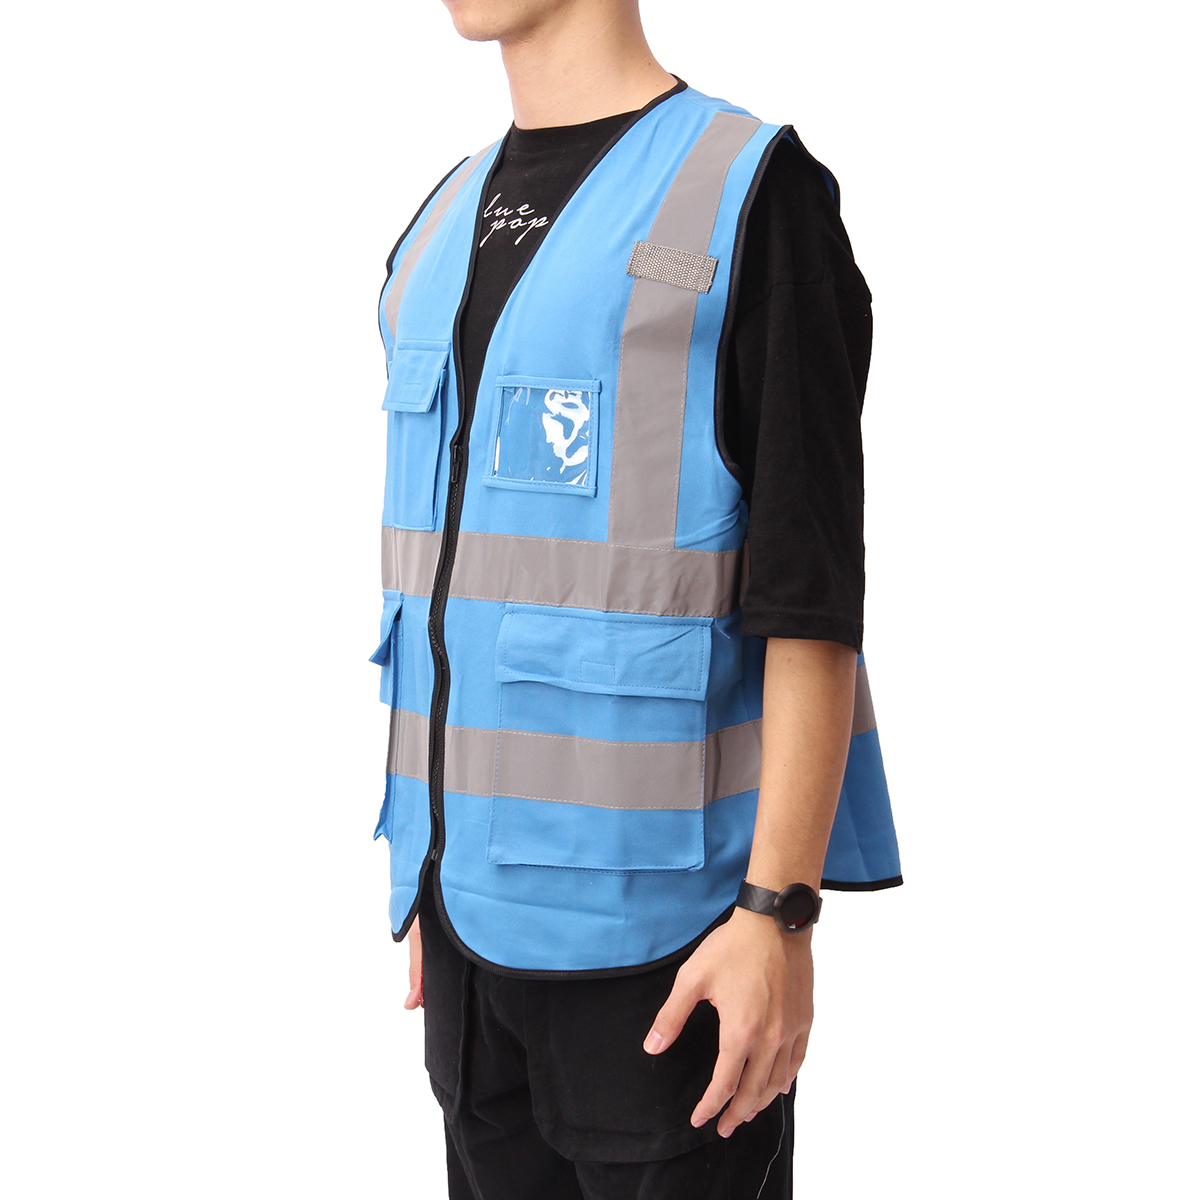 5 Color Vis Vest Workwear Clothing Safety Reflective Vest Safety Vest Reflective